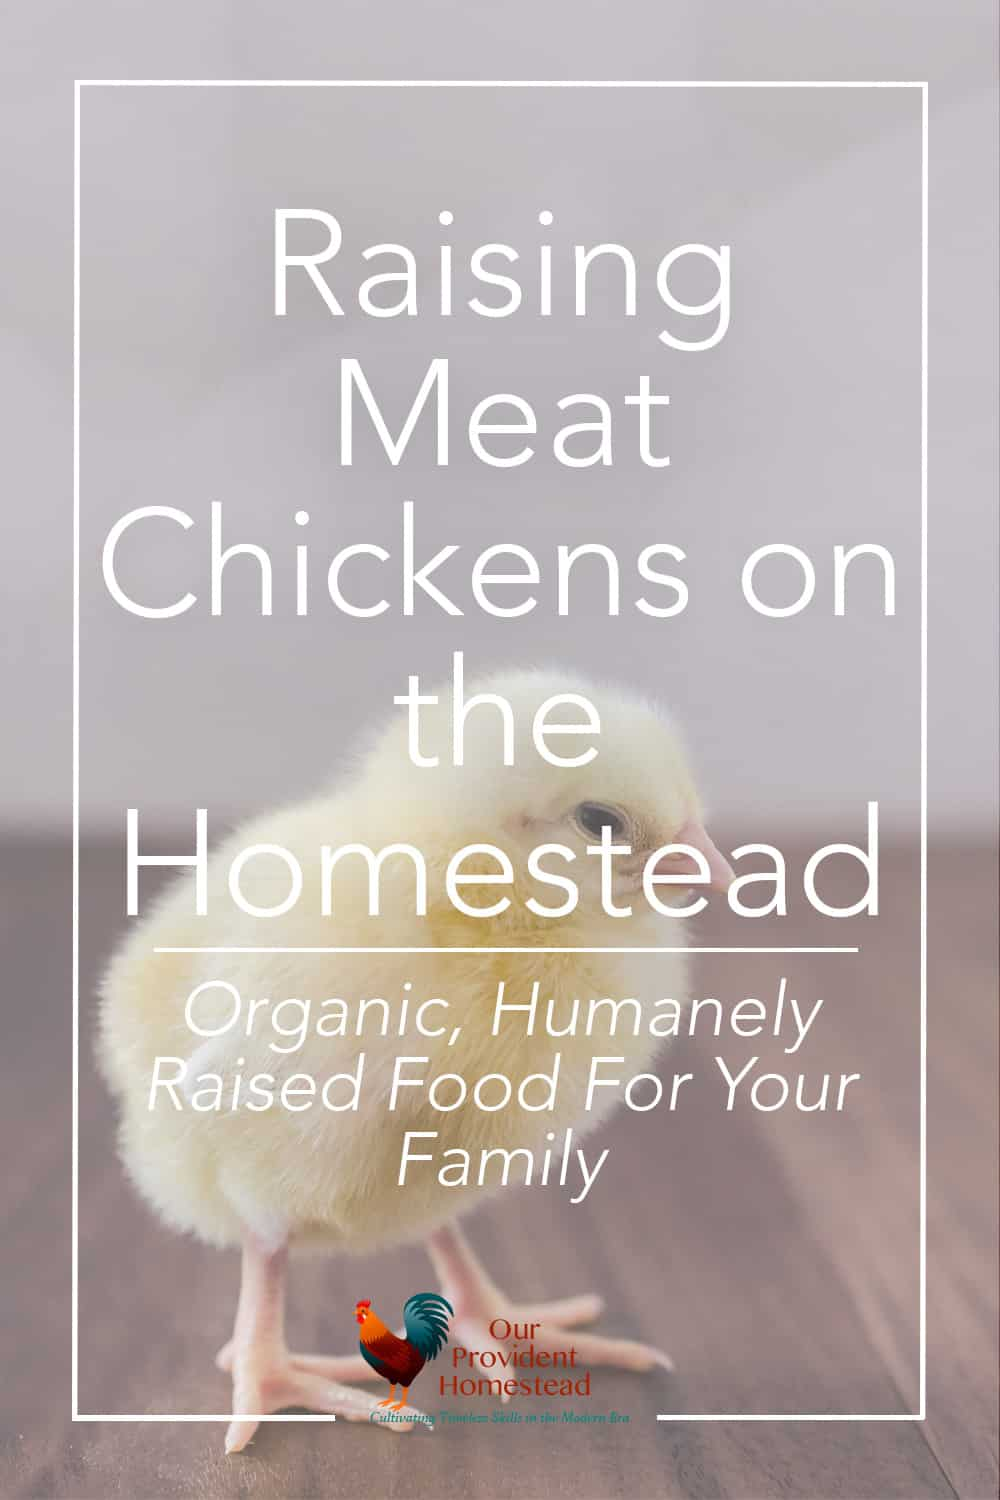 Is eating organic, humanely raised meat important to you? Click here to see how you can raise your own meat chickens to get the best quality possible. #backyardchickens #meatchickens #homesteading